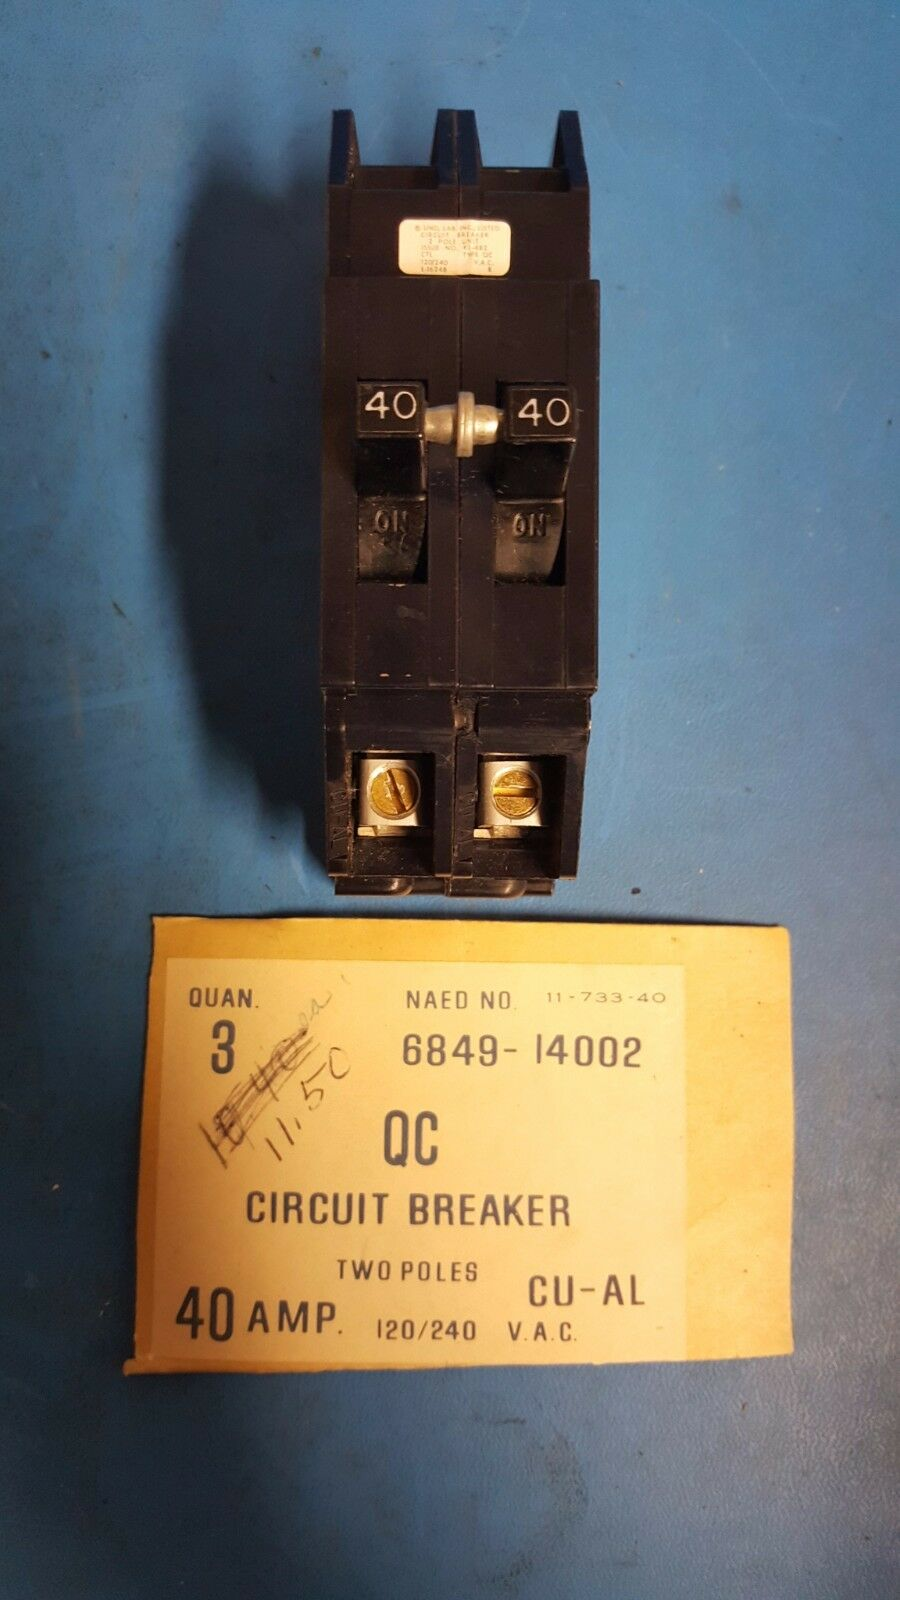 Zinsco Sylvania Type Qc Qc40 40 Amp 2 Pole 120 240 Vac Circuit 20a Afci Breaker Chfcaf120neweggcom Norton Secured Powered By Verisign